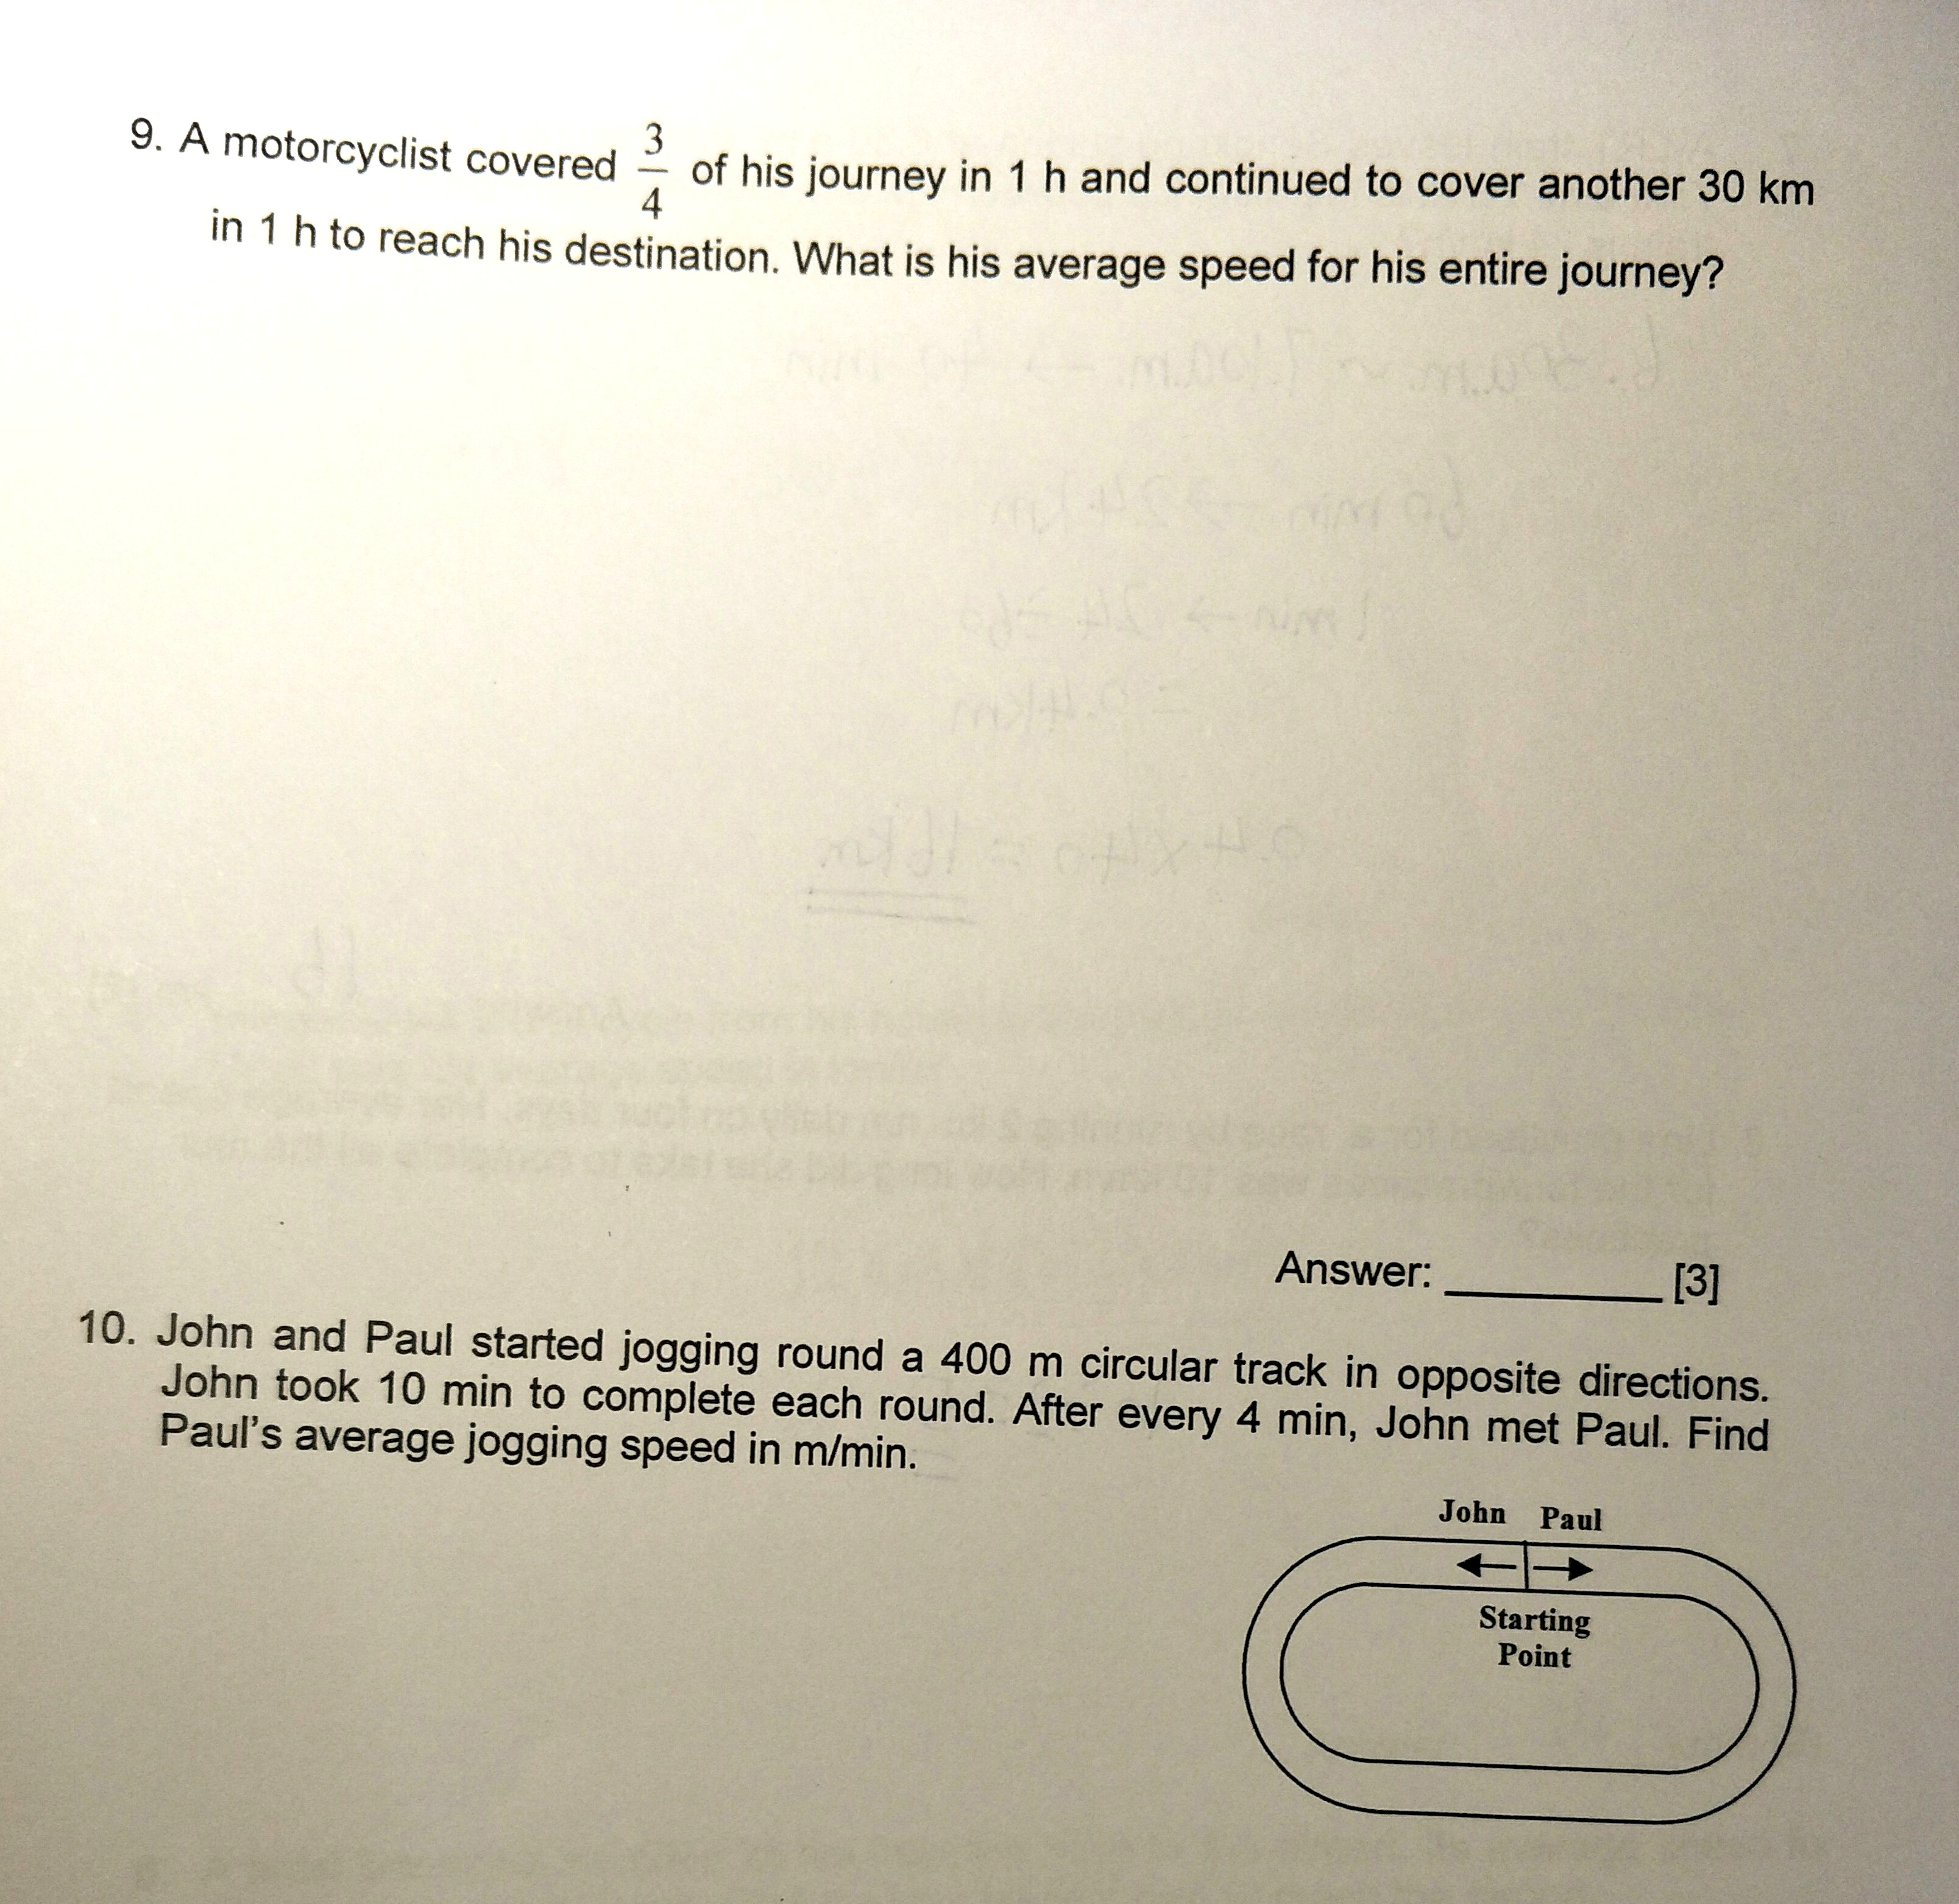 Primary 6 Maths Practice - Singapore Homework Questions